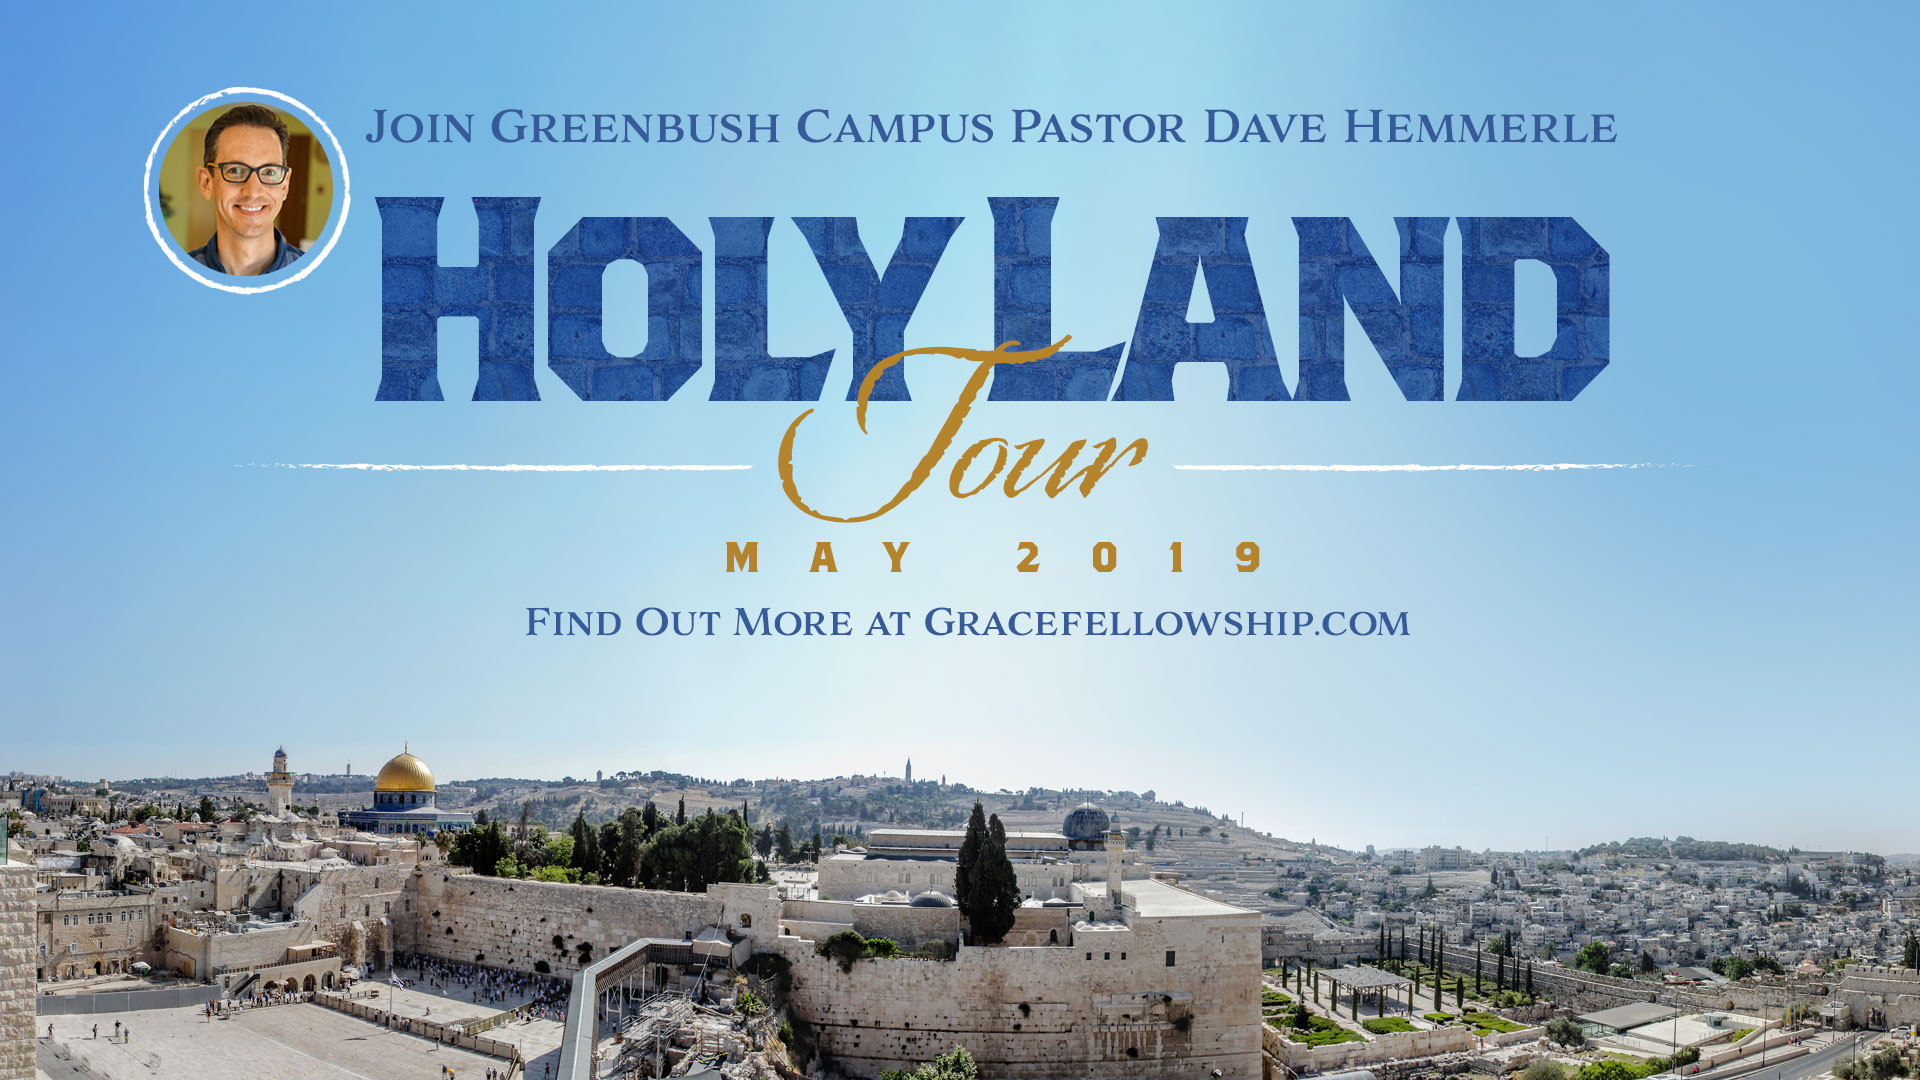 Holy Land Tour, May 2019 with Pastor Dave